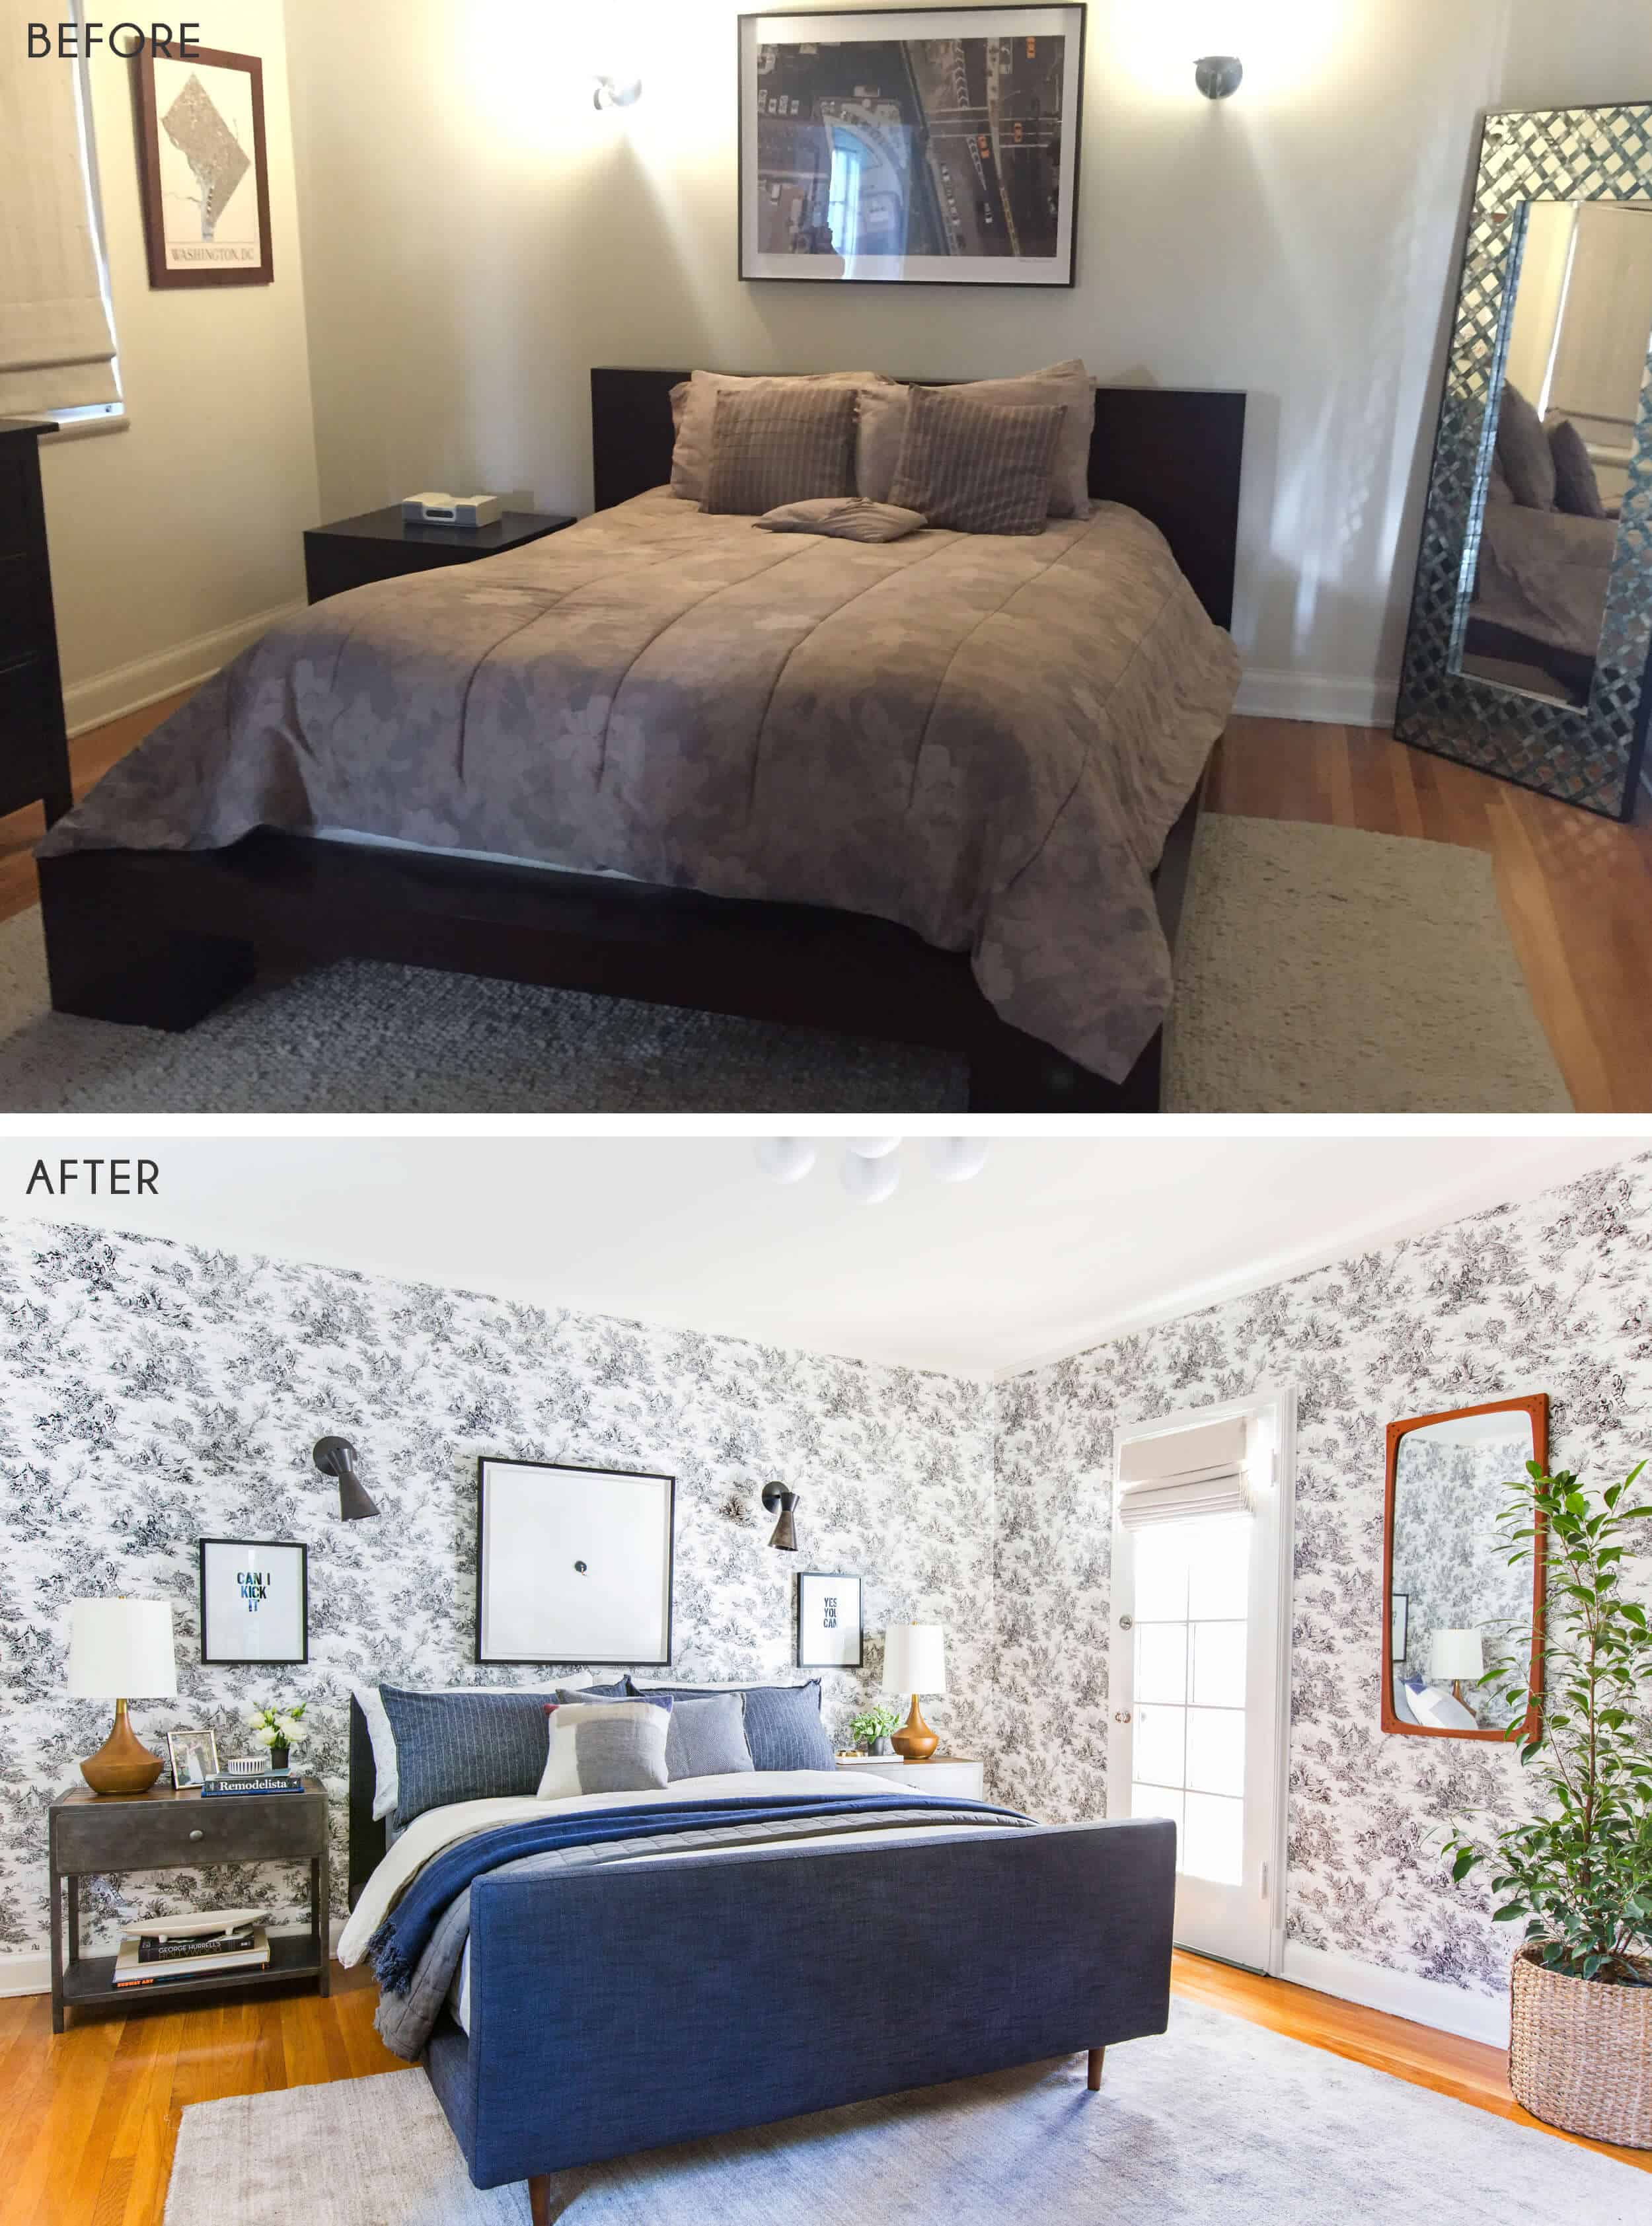 Guest Bedroom_Traditional Eclectic_Industrial_Modern_Toile_Wallpaper_Reveal_Before_After_3